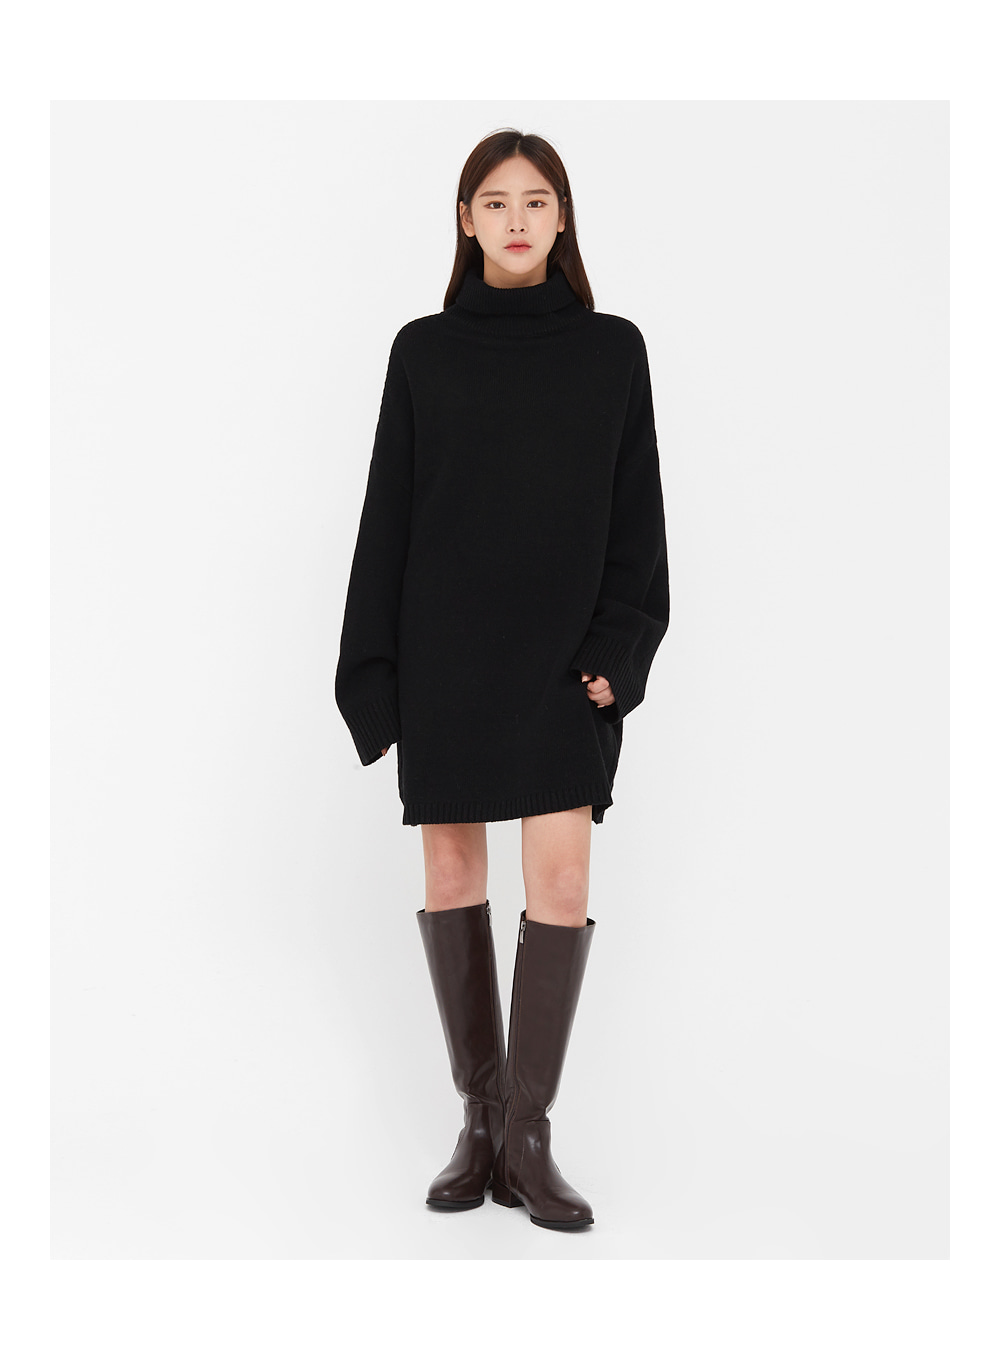 round shape long boots